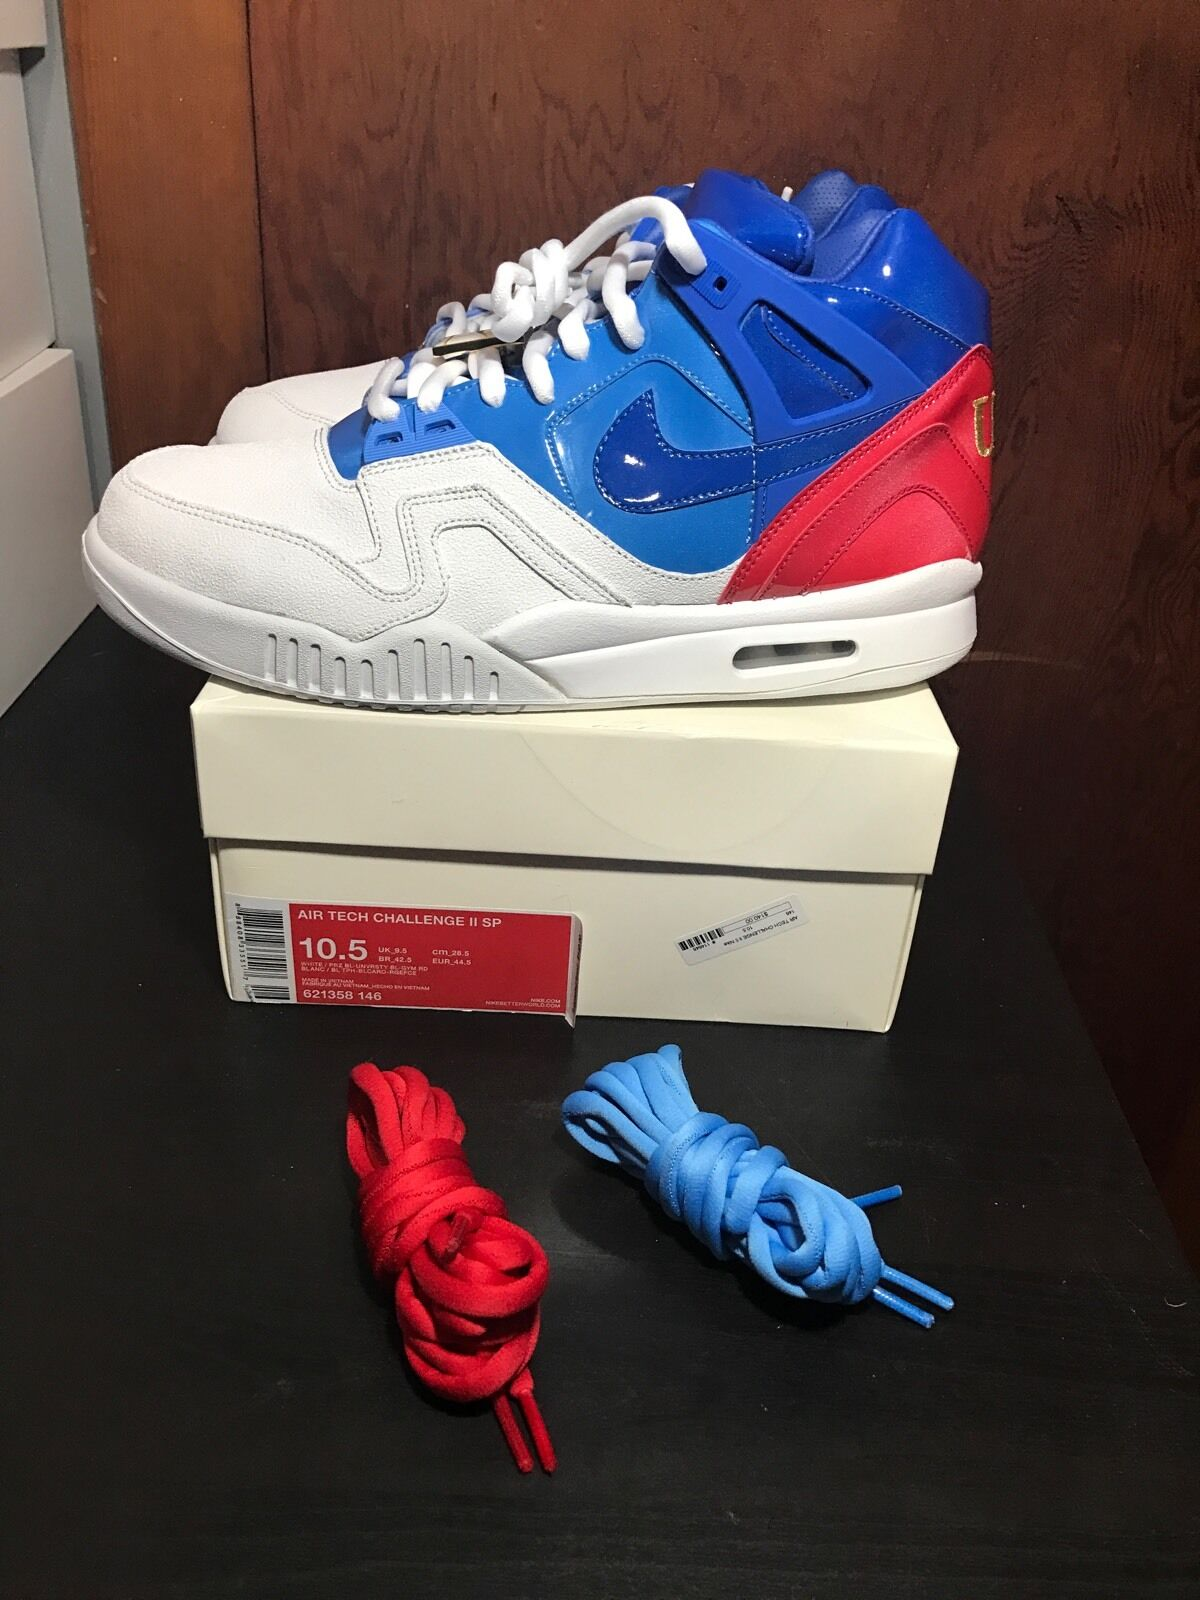 Nike air tech challenge ii sp aprire sz 621358-146 francese andre agassi usa